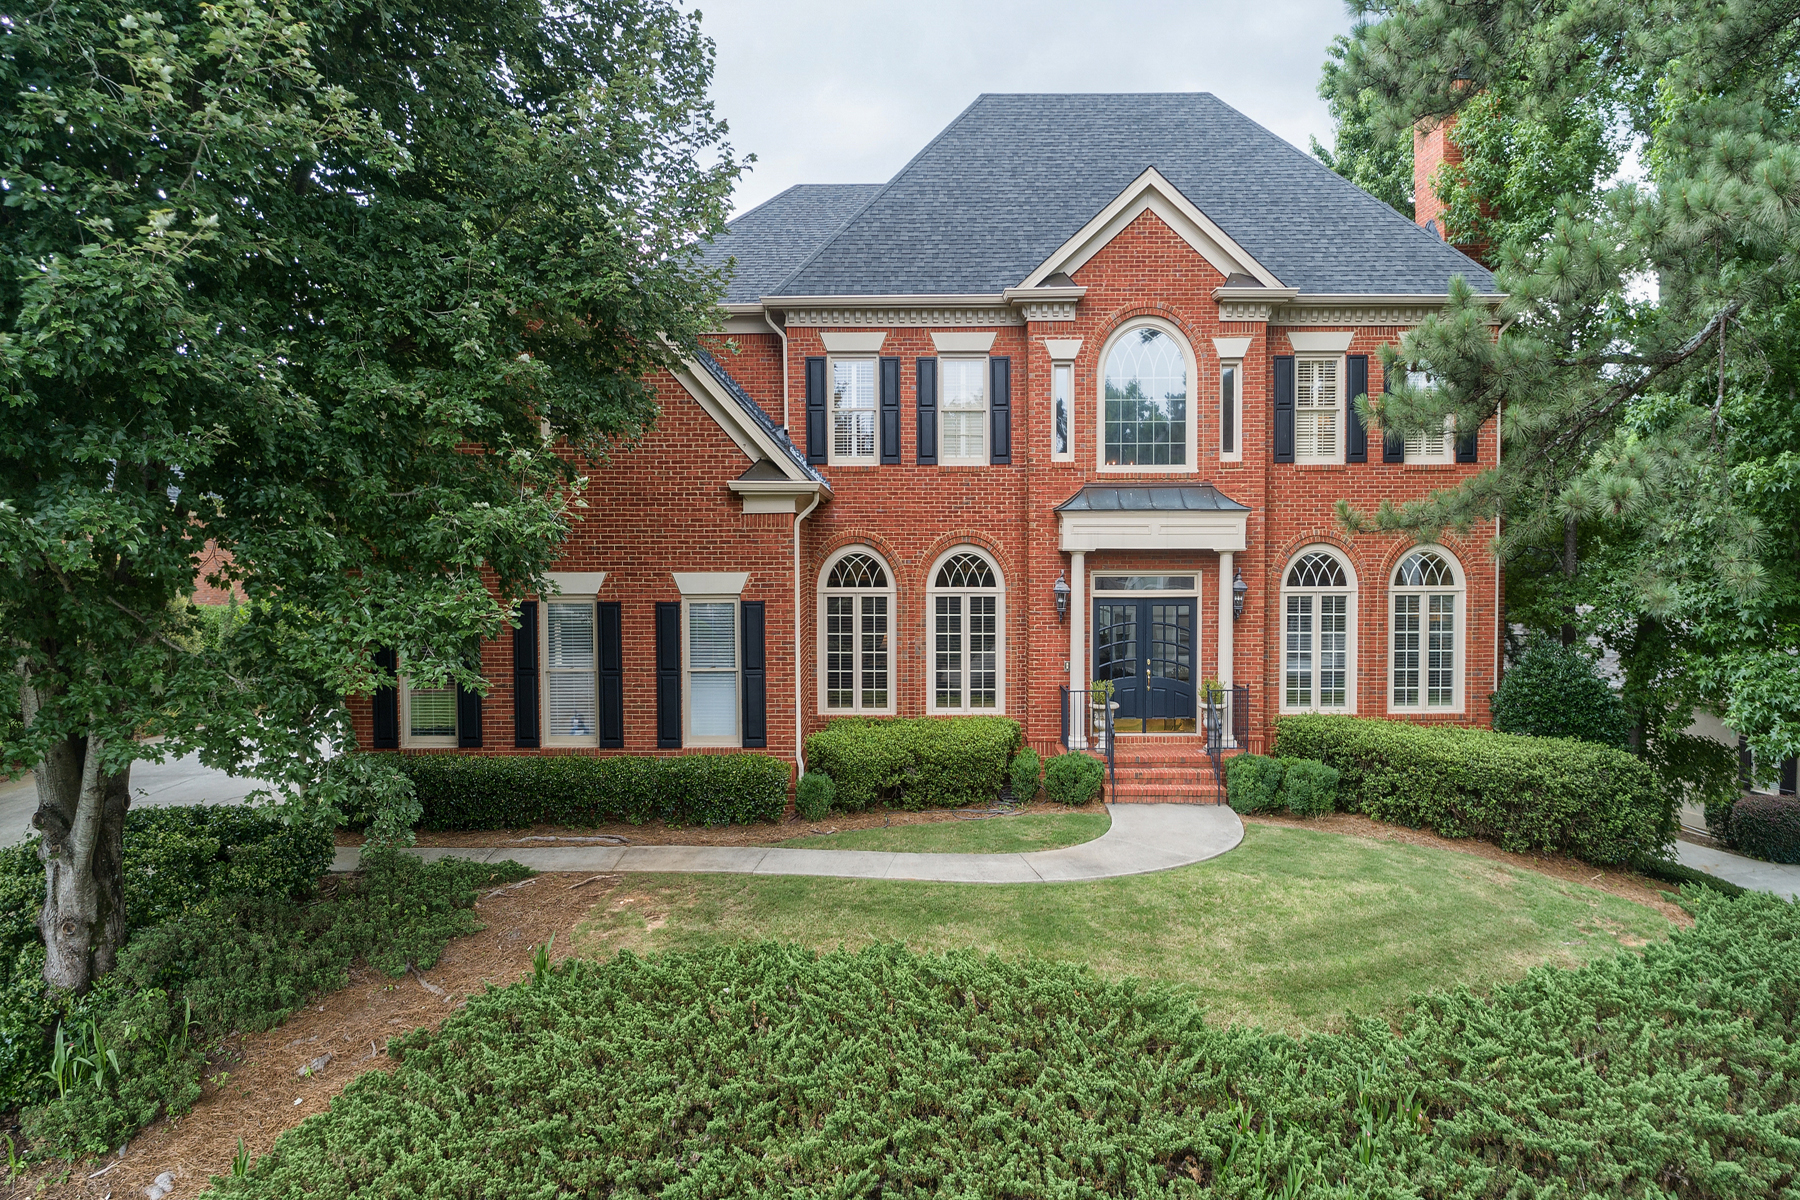 Single Family Home for Sale at Private Backyard Oasis In Johns Creek 1127 Ascott Valley Drive Johns Creek, Georgia 30097 United States